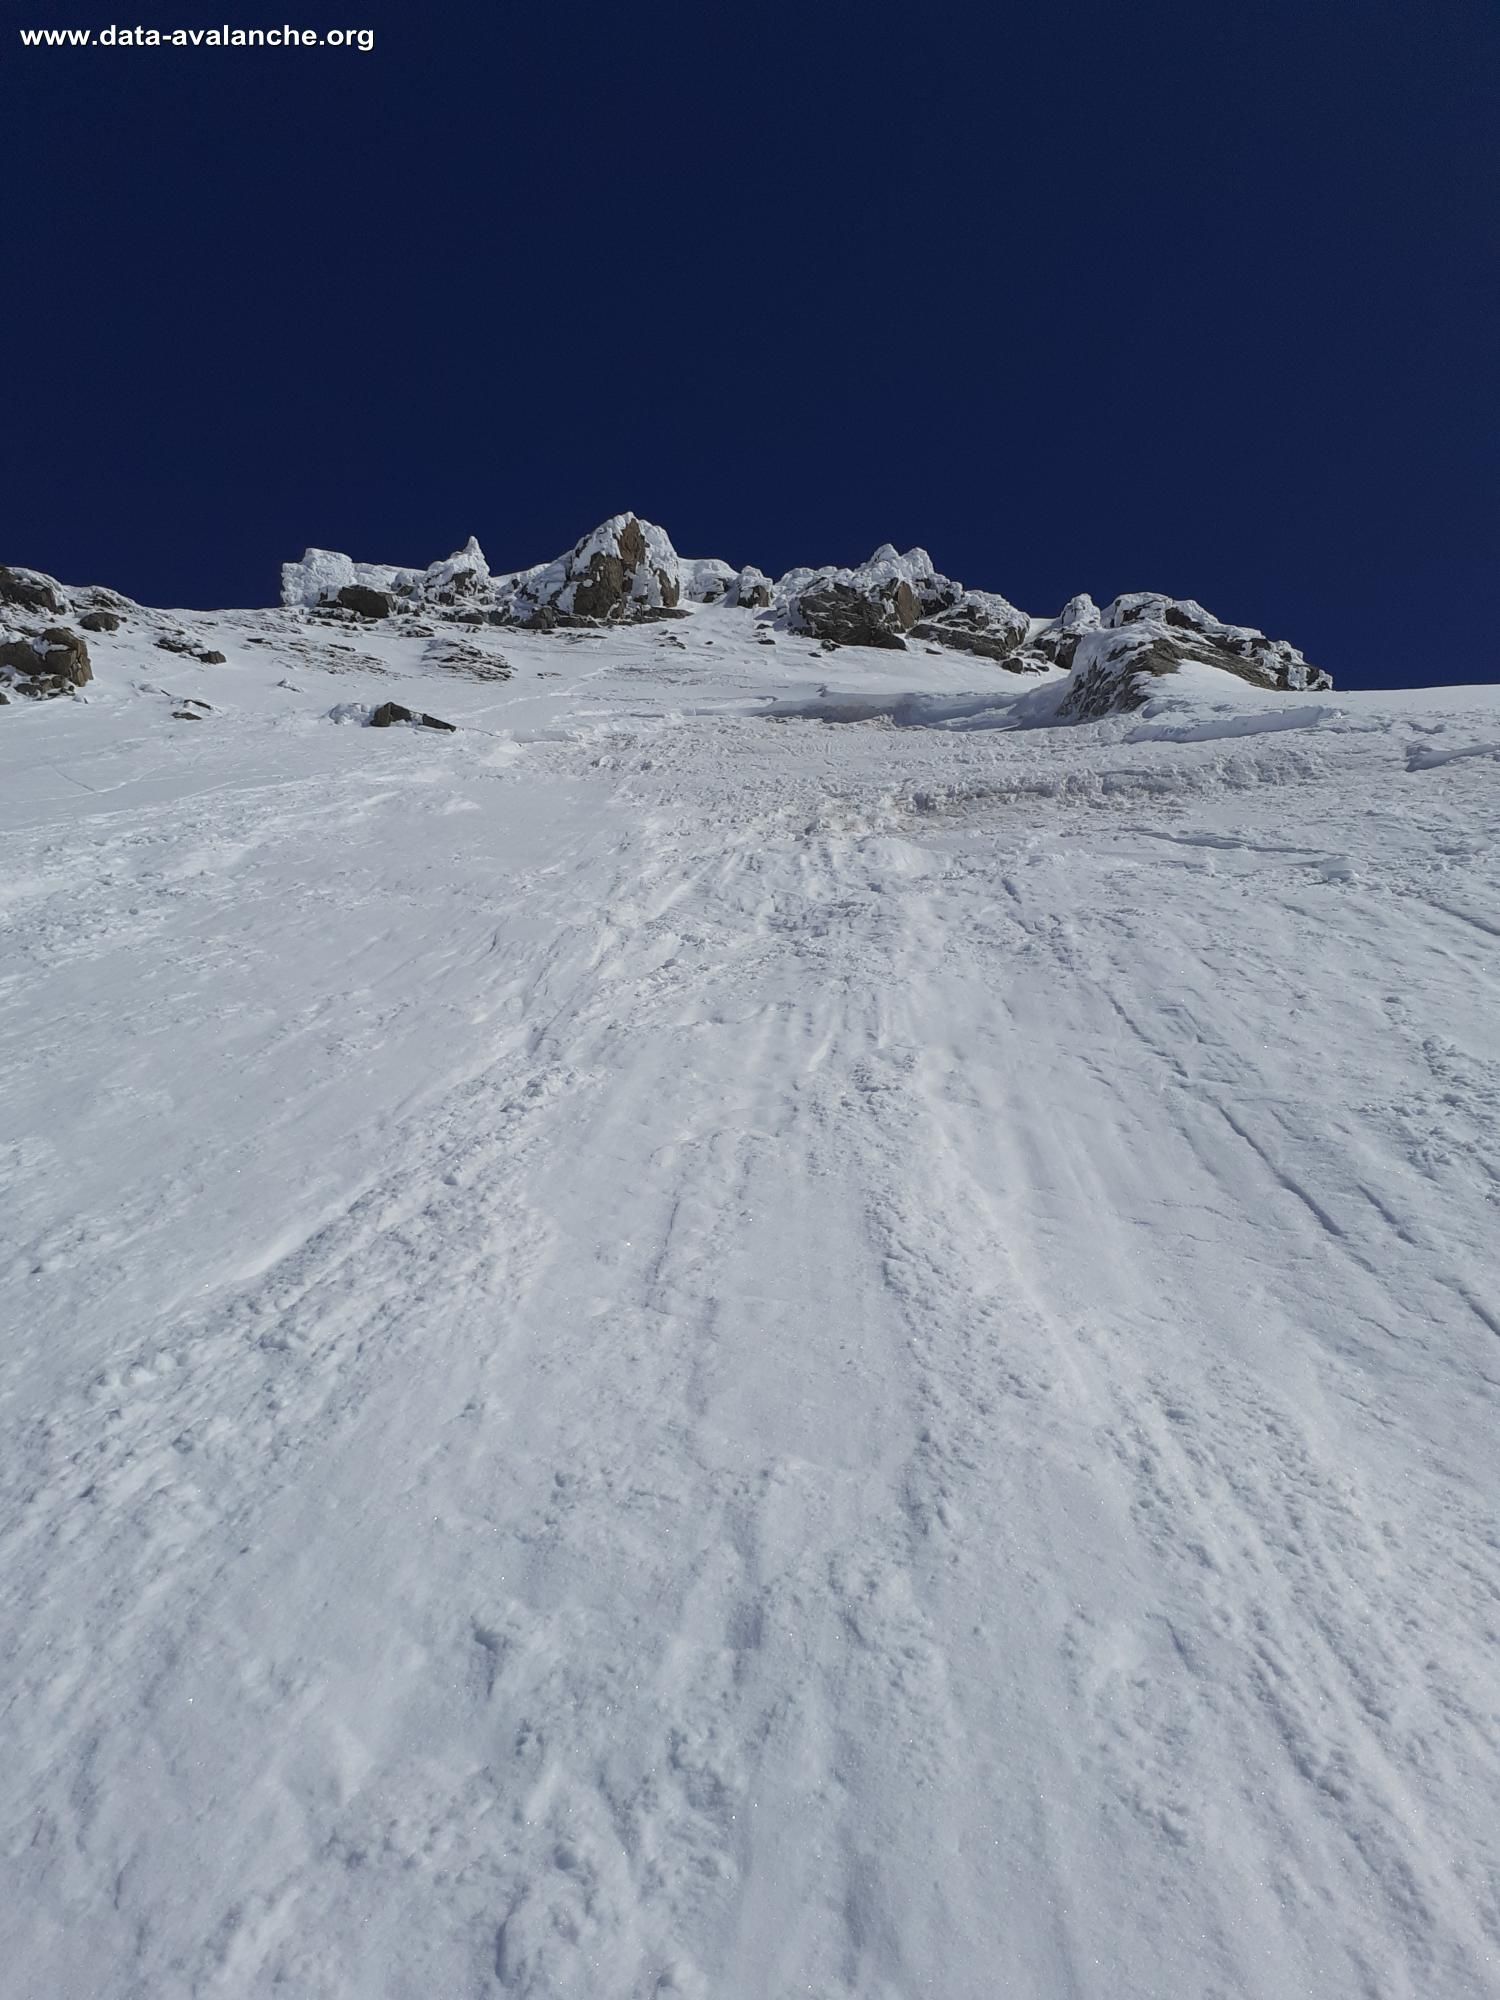 Avalanche Maurienne, secteur La Grande Chible, Face W - La Grande Chible - Photo 1 - © sousou15